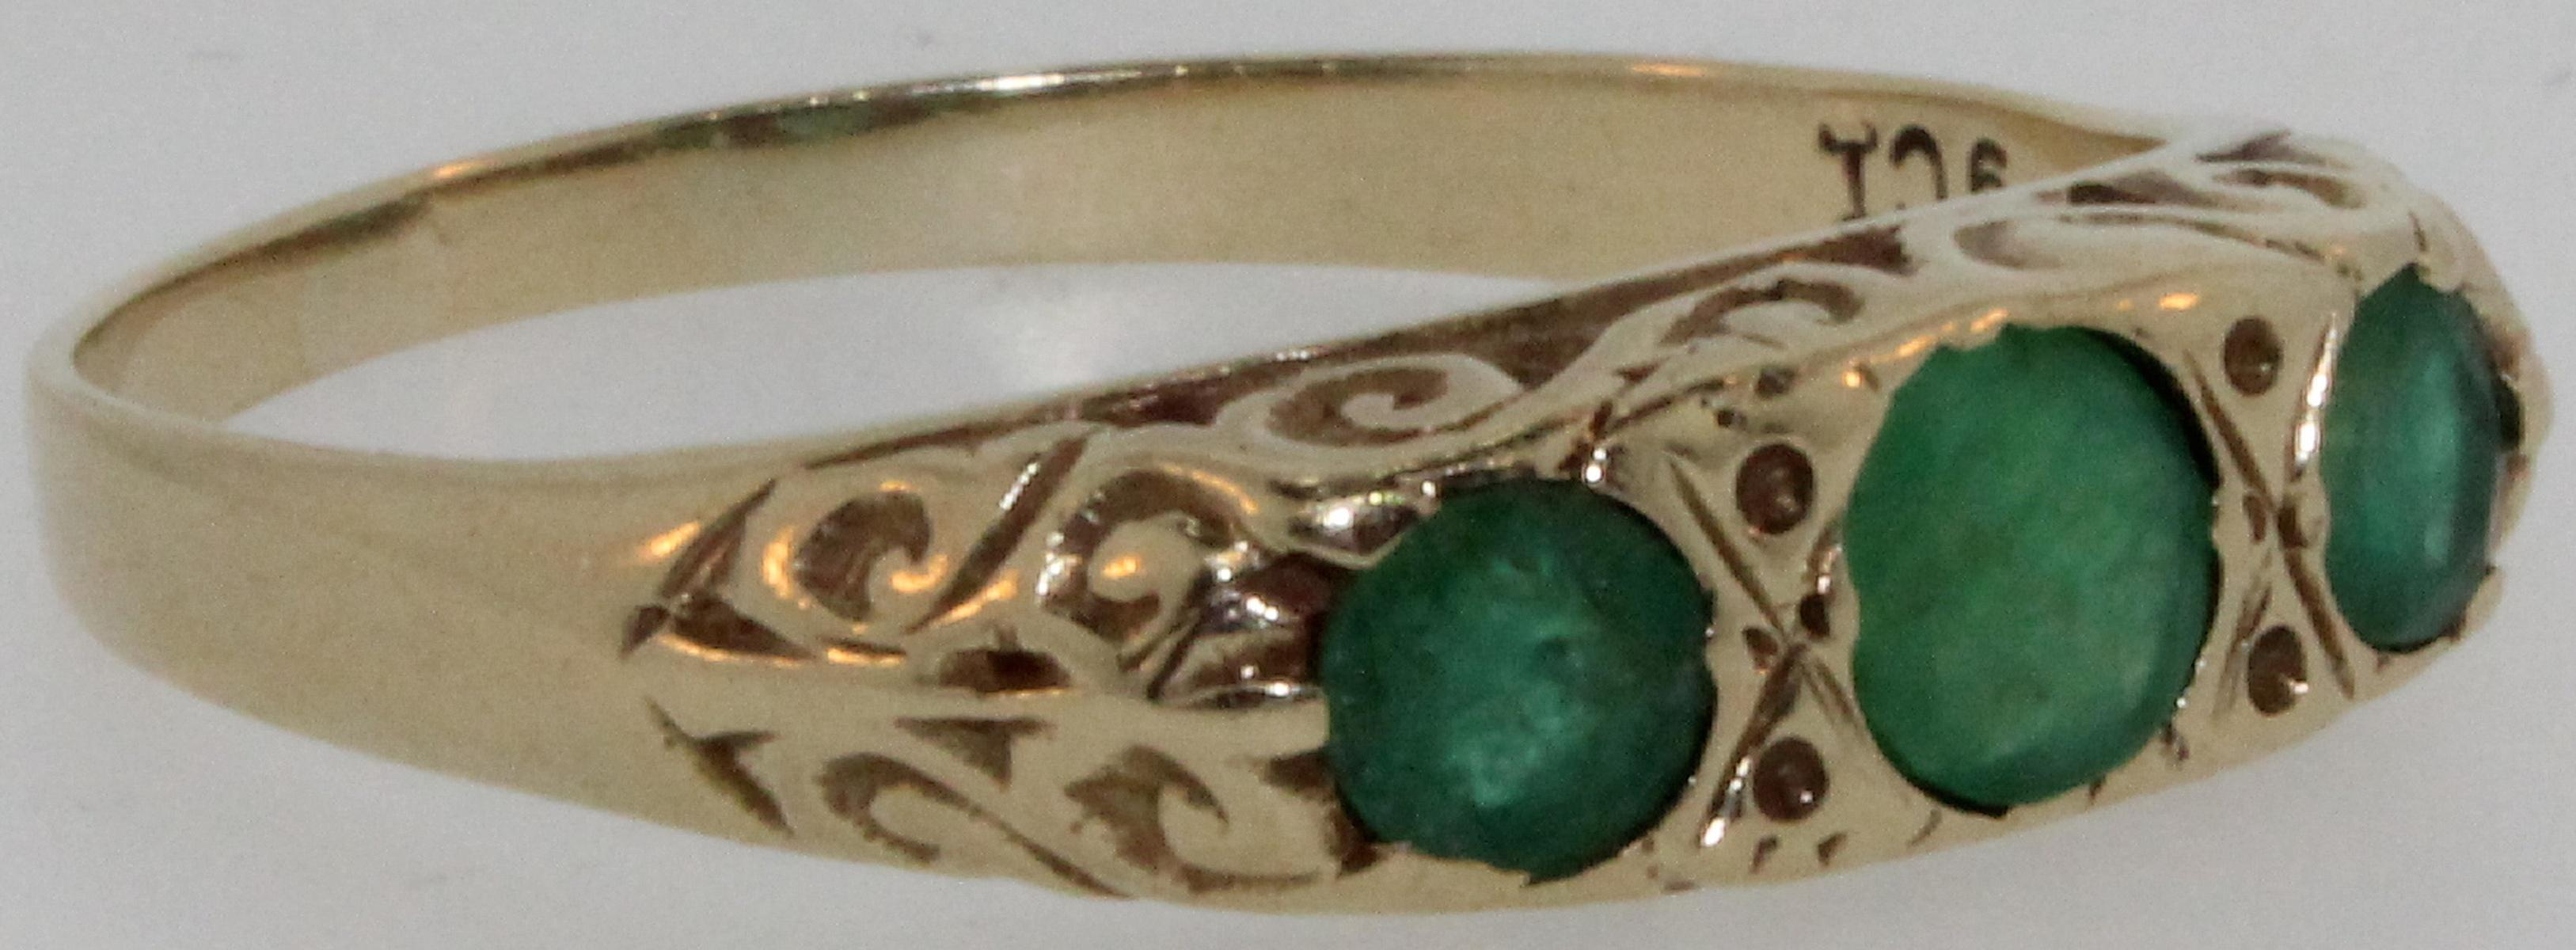 Vintage Emerald Ring in 9ct Gold